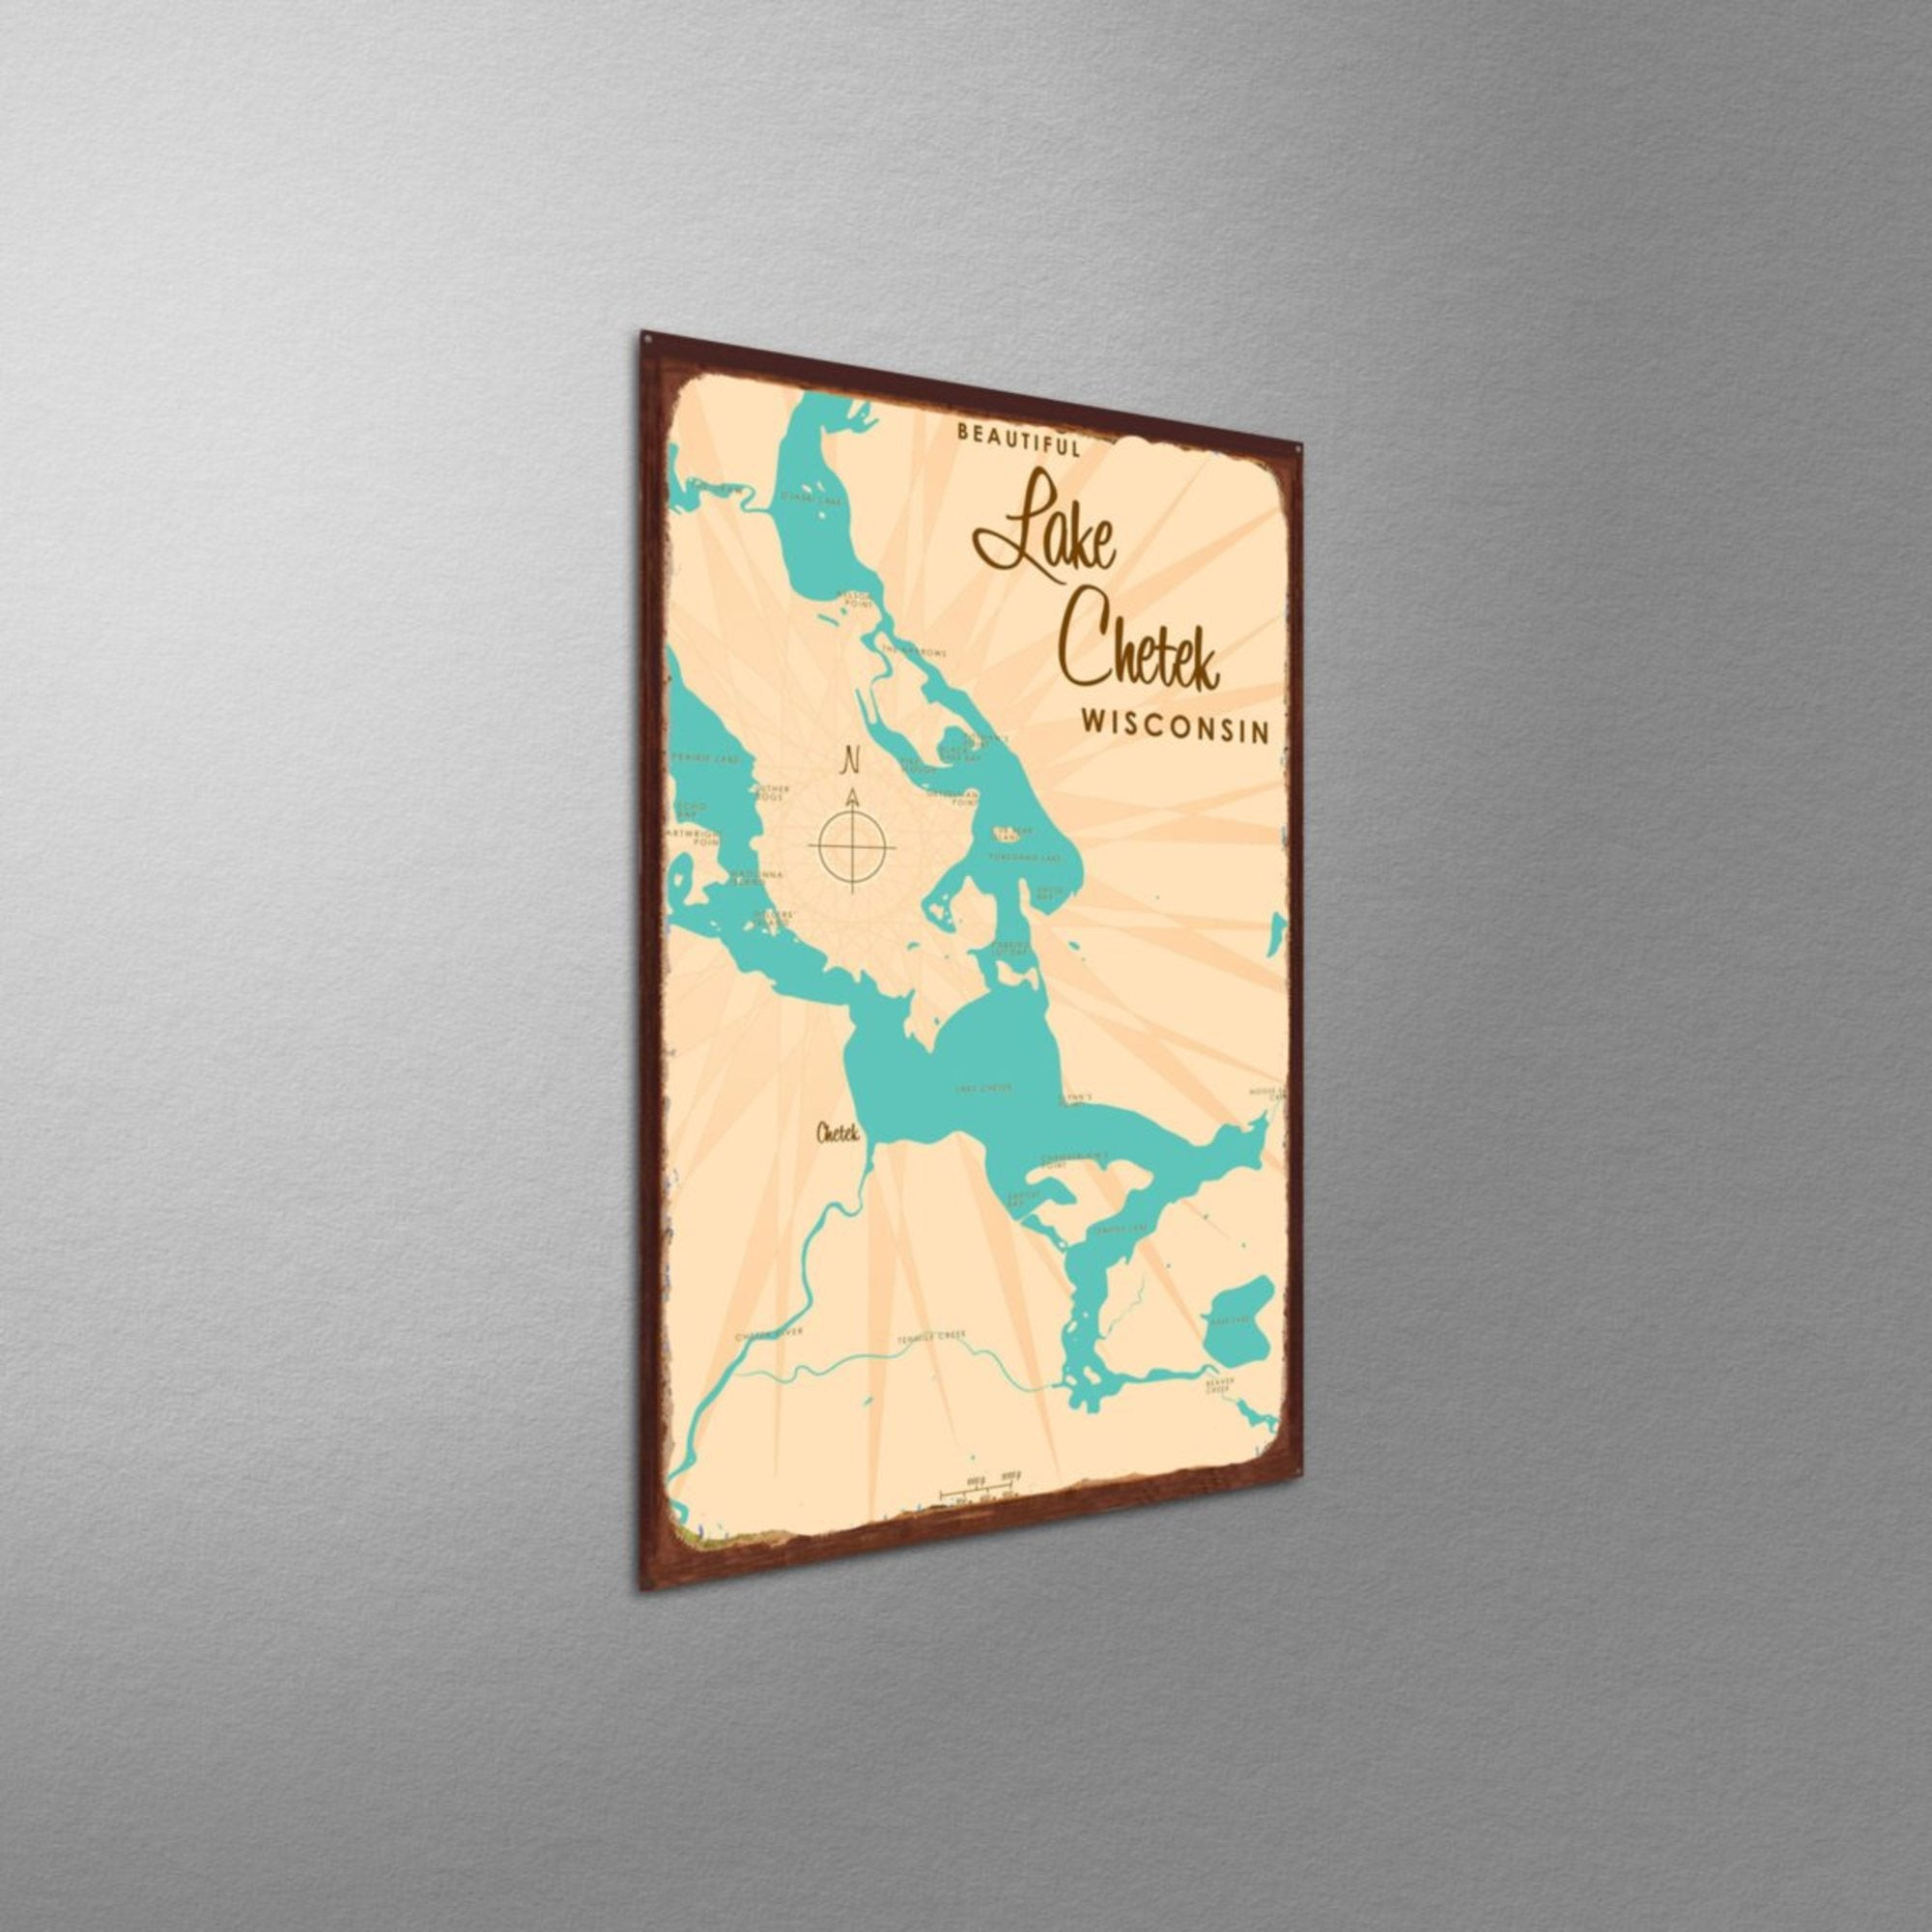 Lake Chetek Wisconsin, Rustic Metal Sign Map Art